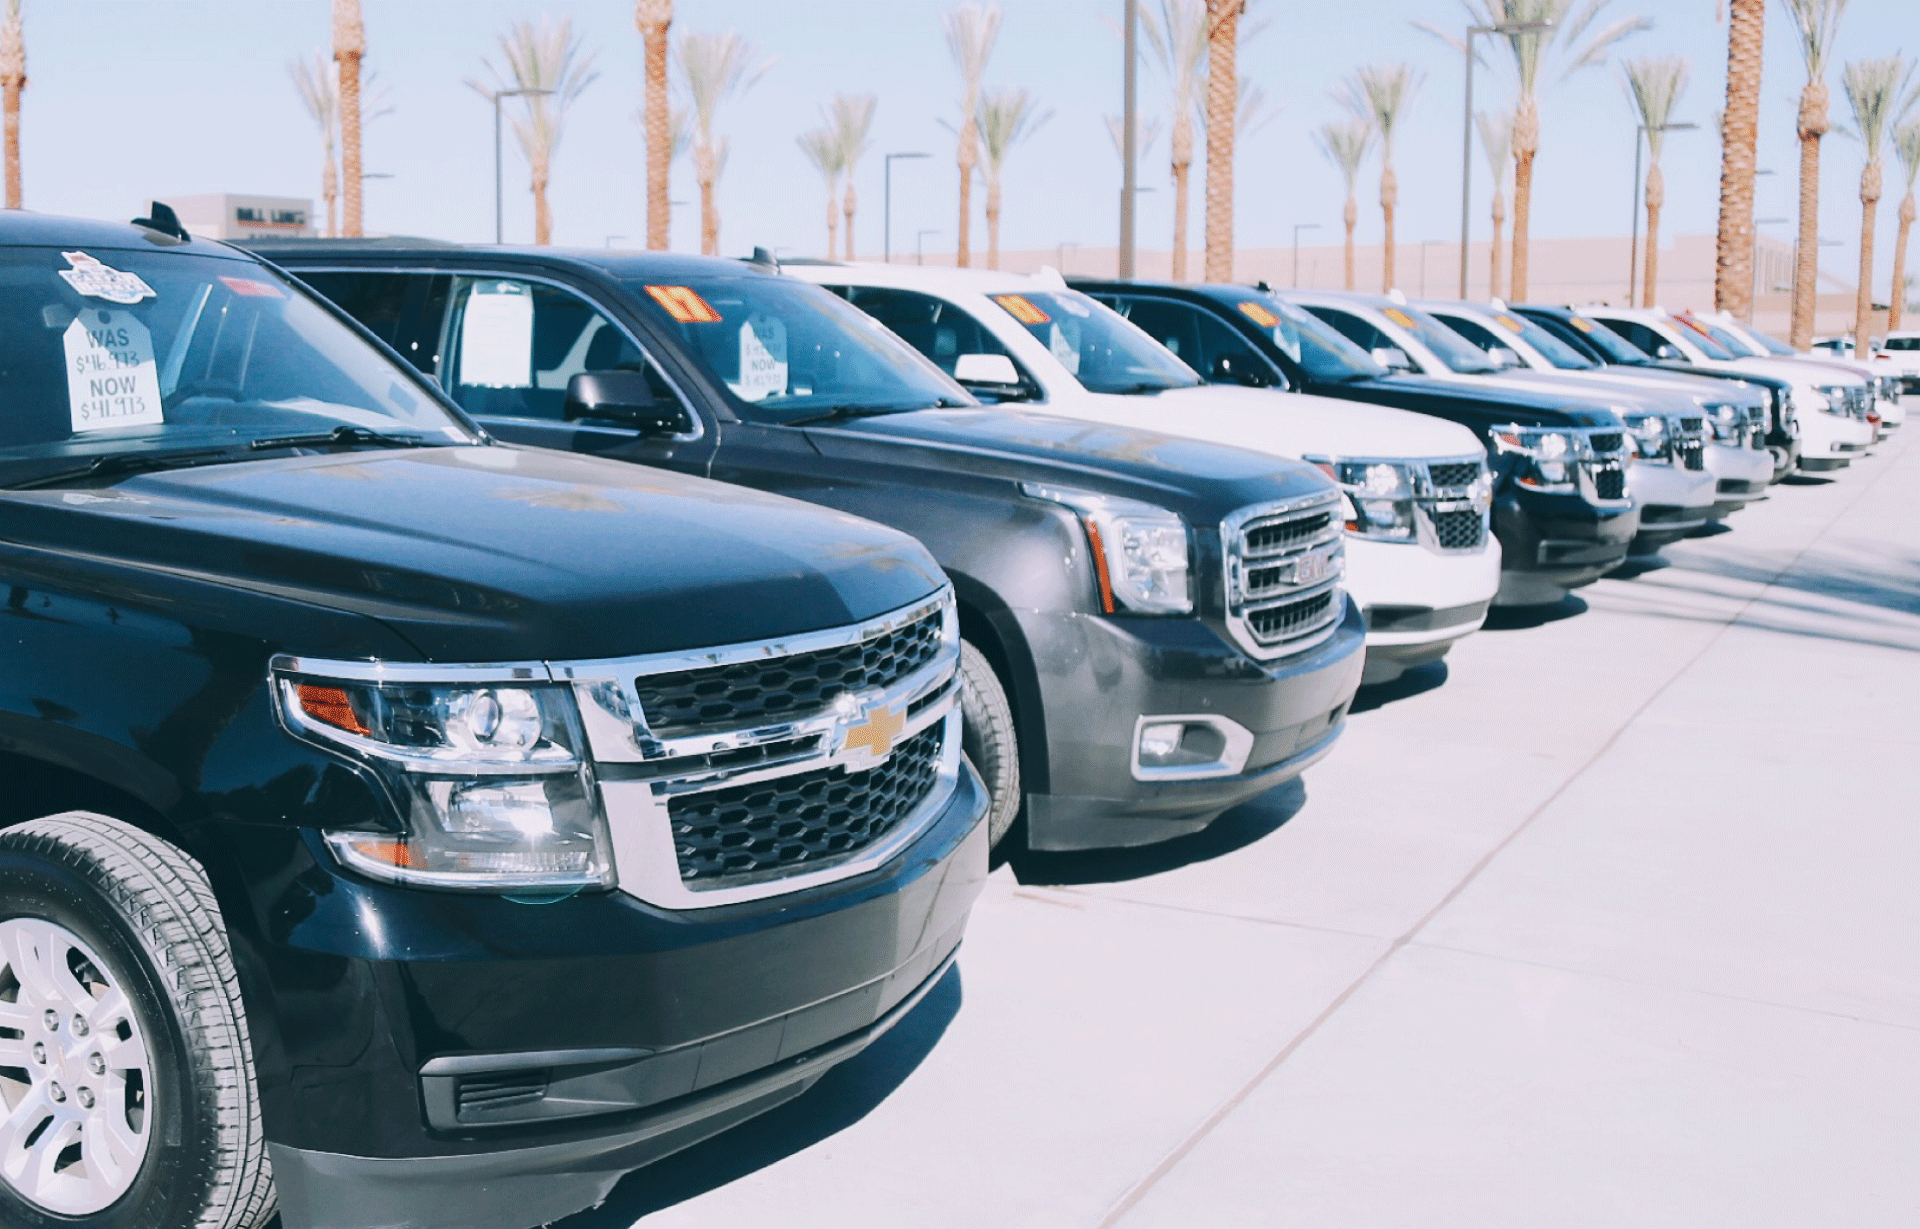 Large selection of pre-owned car, truck, or SUVs available in Gilbert